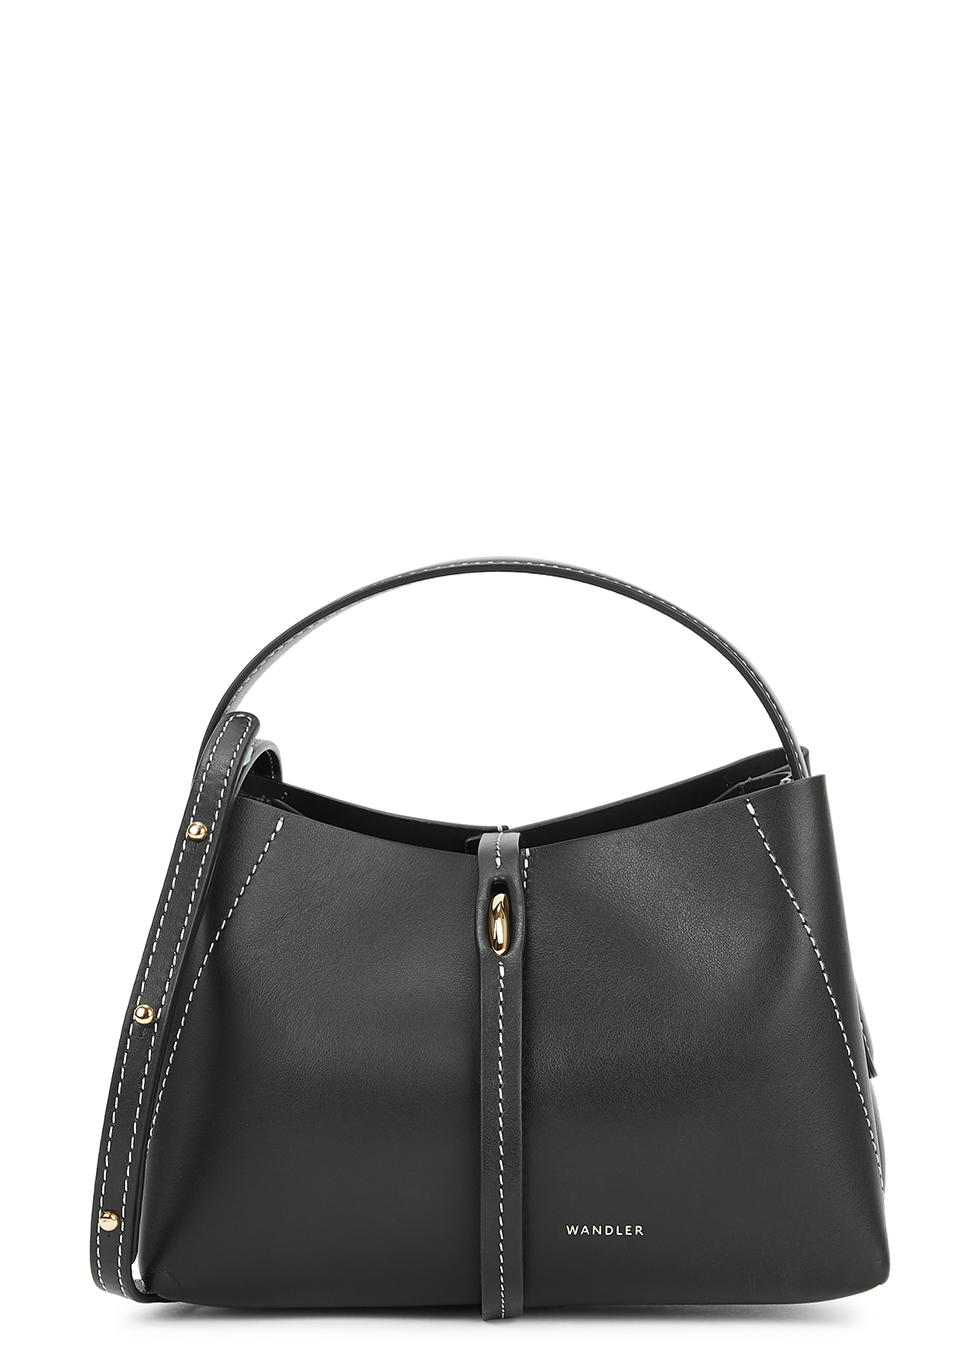 Ava micro black leather top handle bag